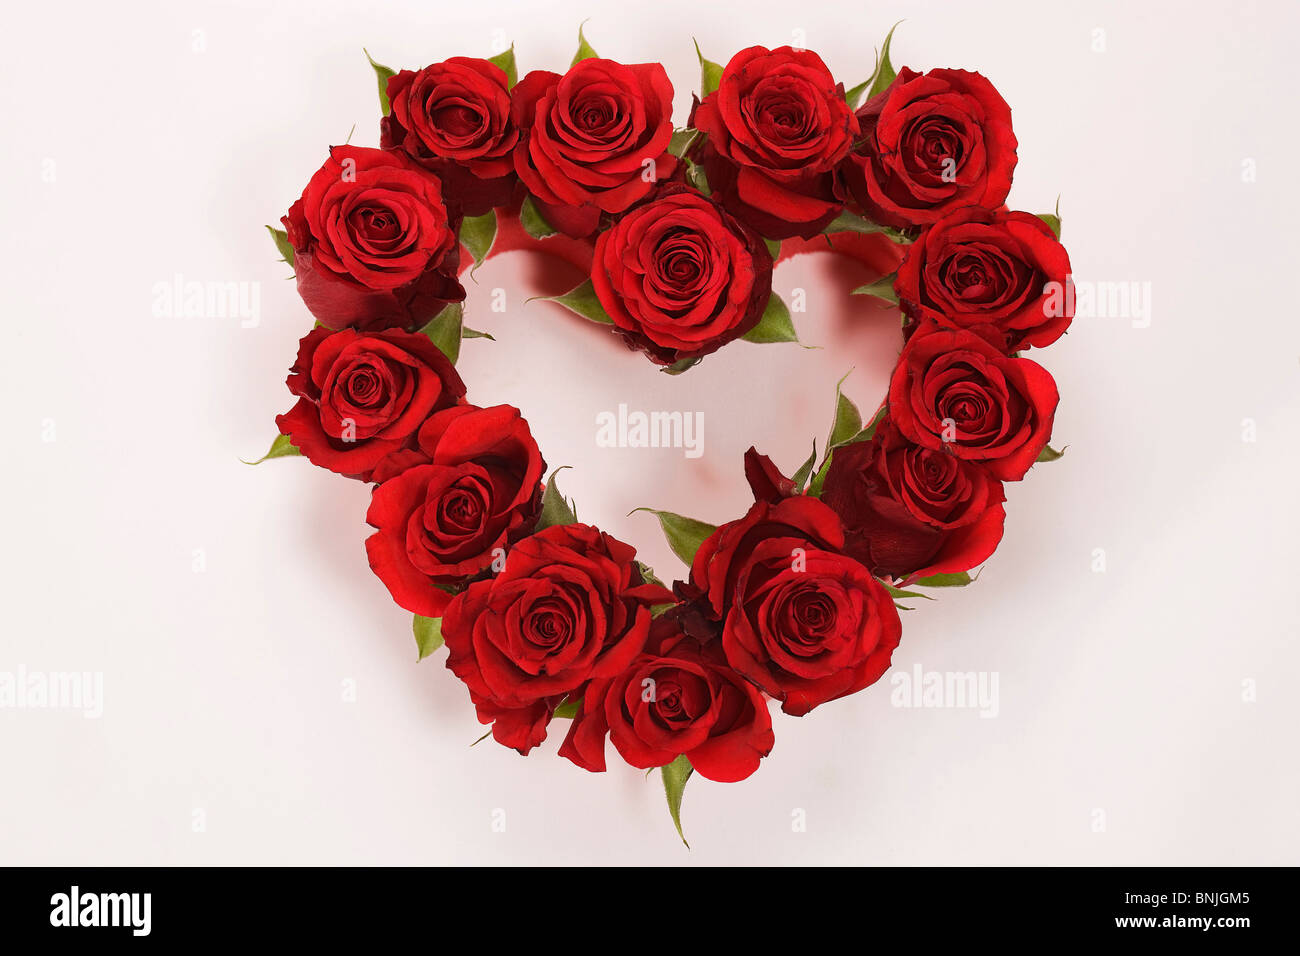 Genre flower flowers gift heart in love love loving red rose rose genre flower flowers gift heart in love love loving red rose rose red roses concept studio negle Choice Image